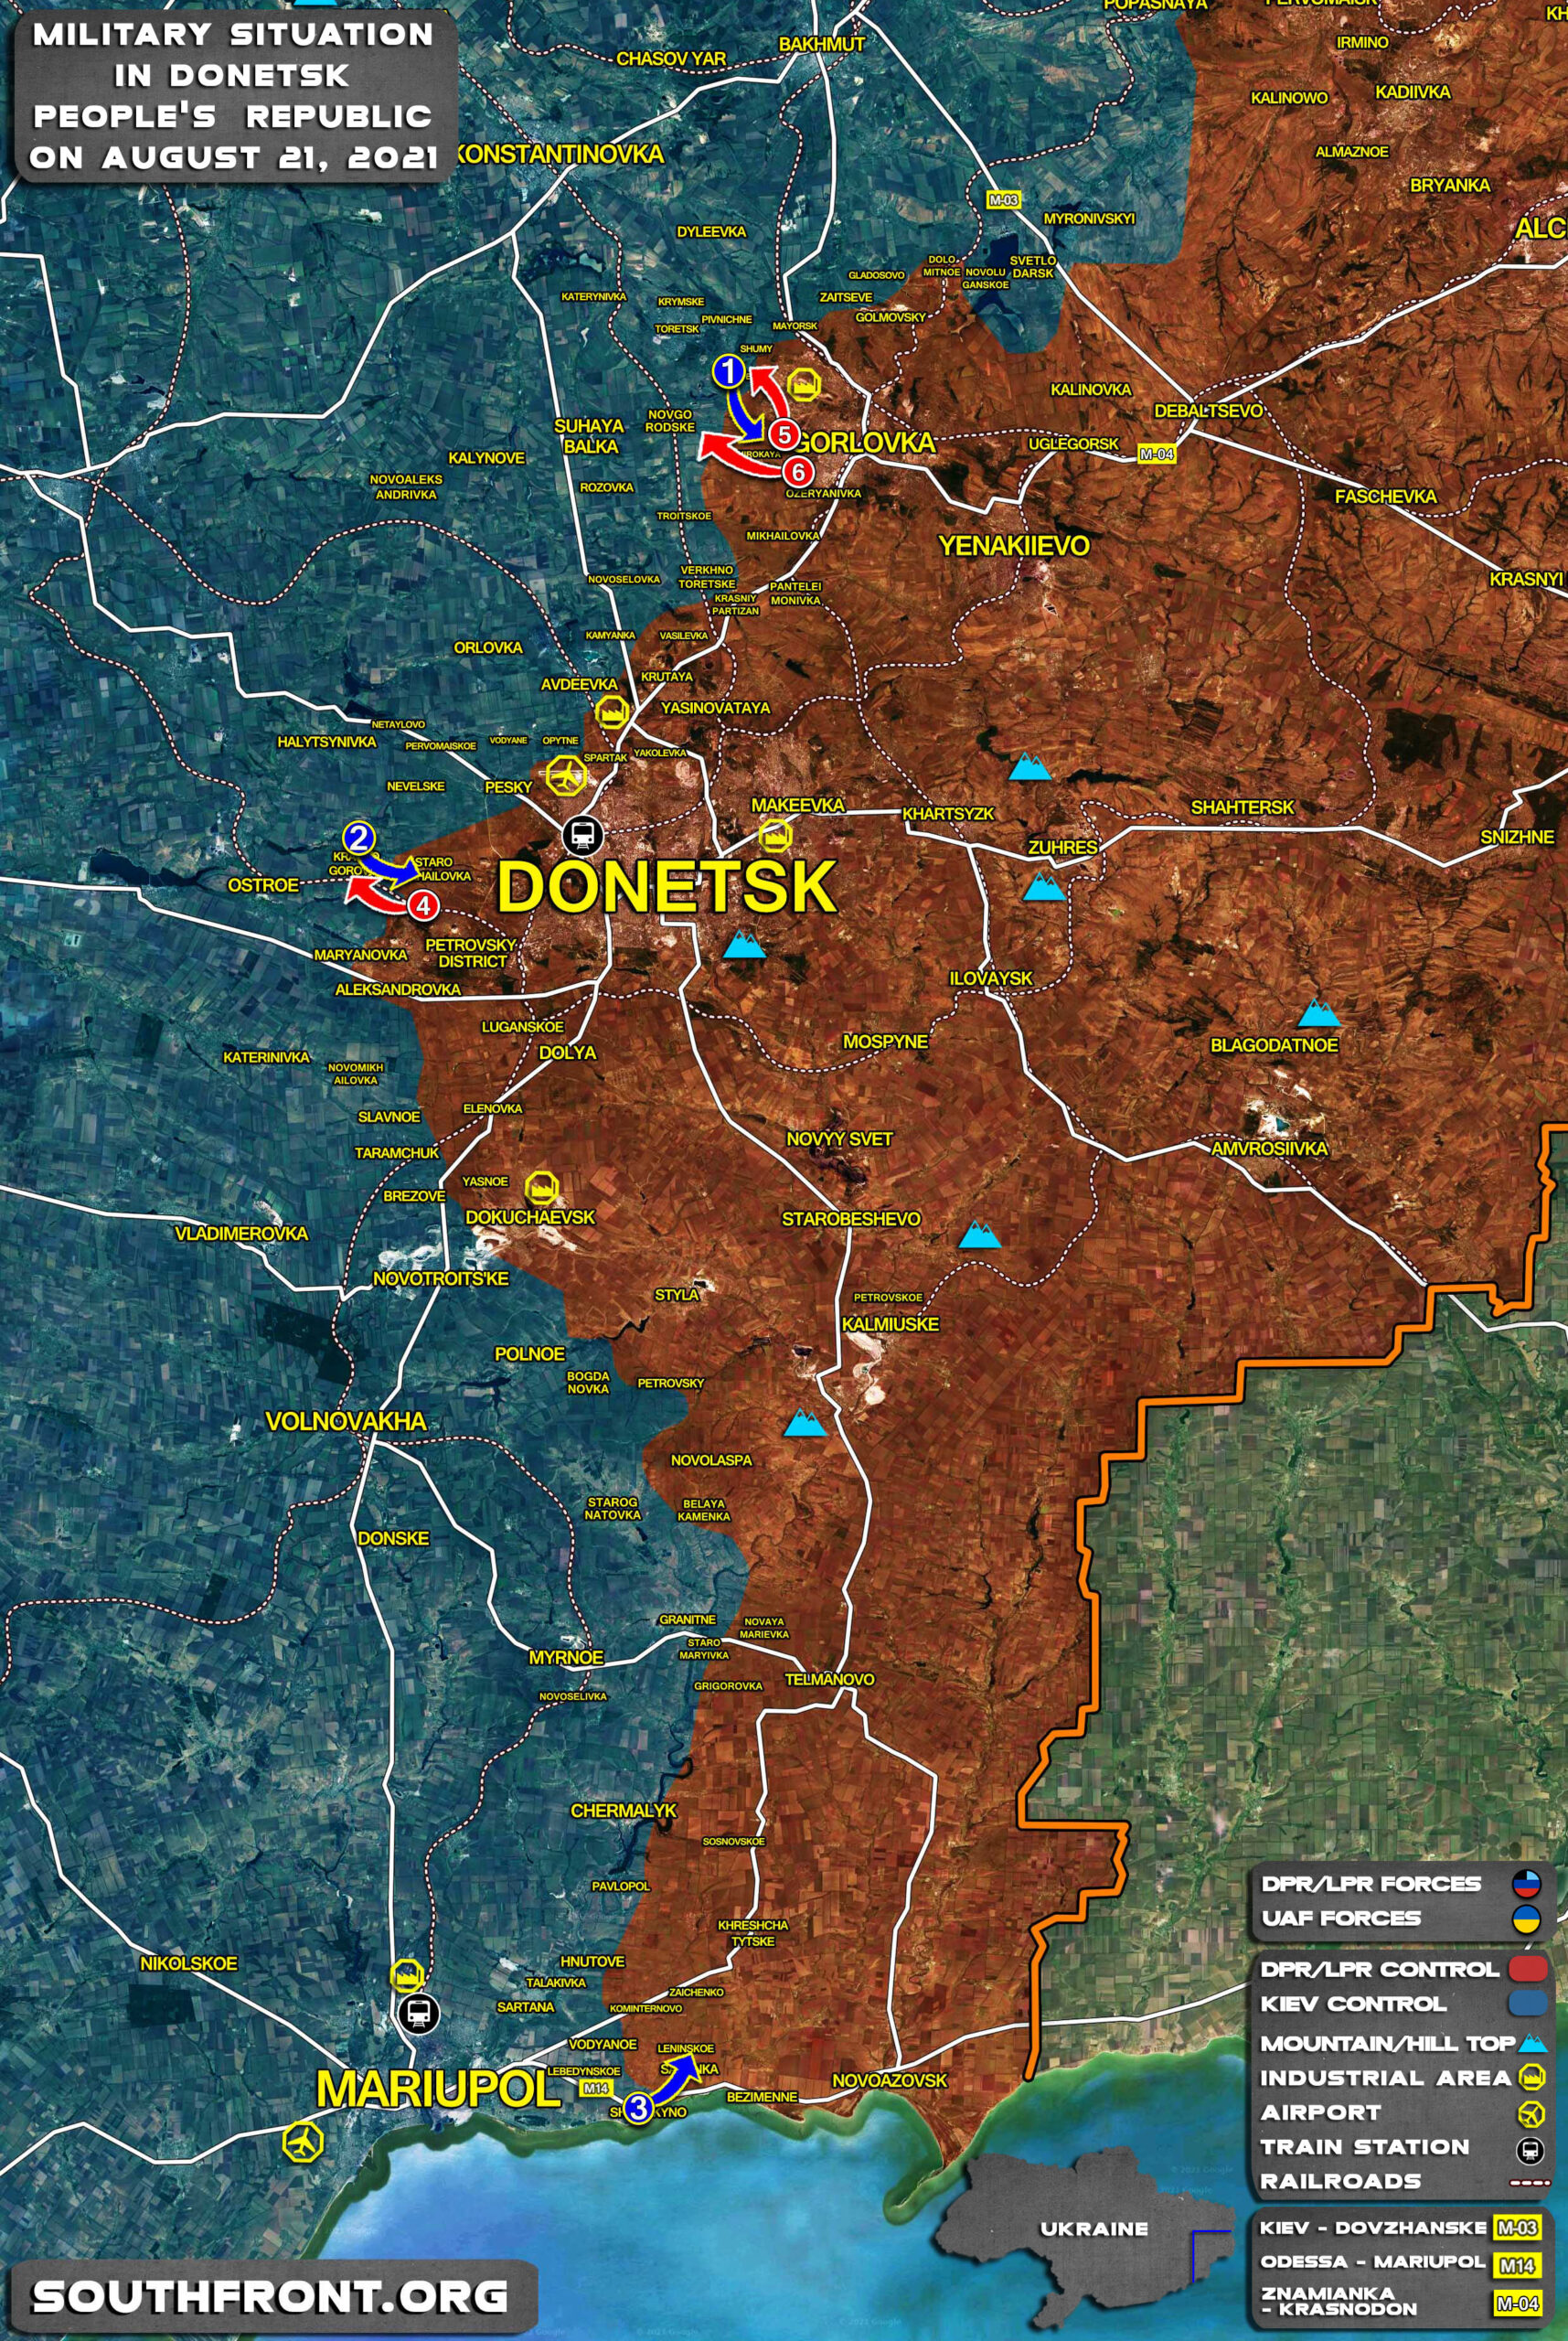 Military Situation In Donetsk People's Republic On August 21, 2021 (Map Update)